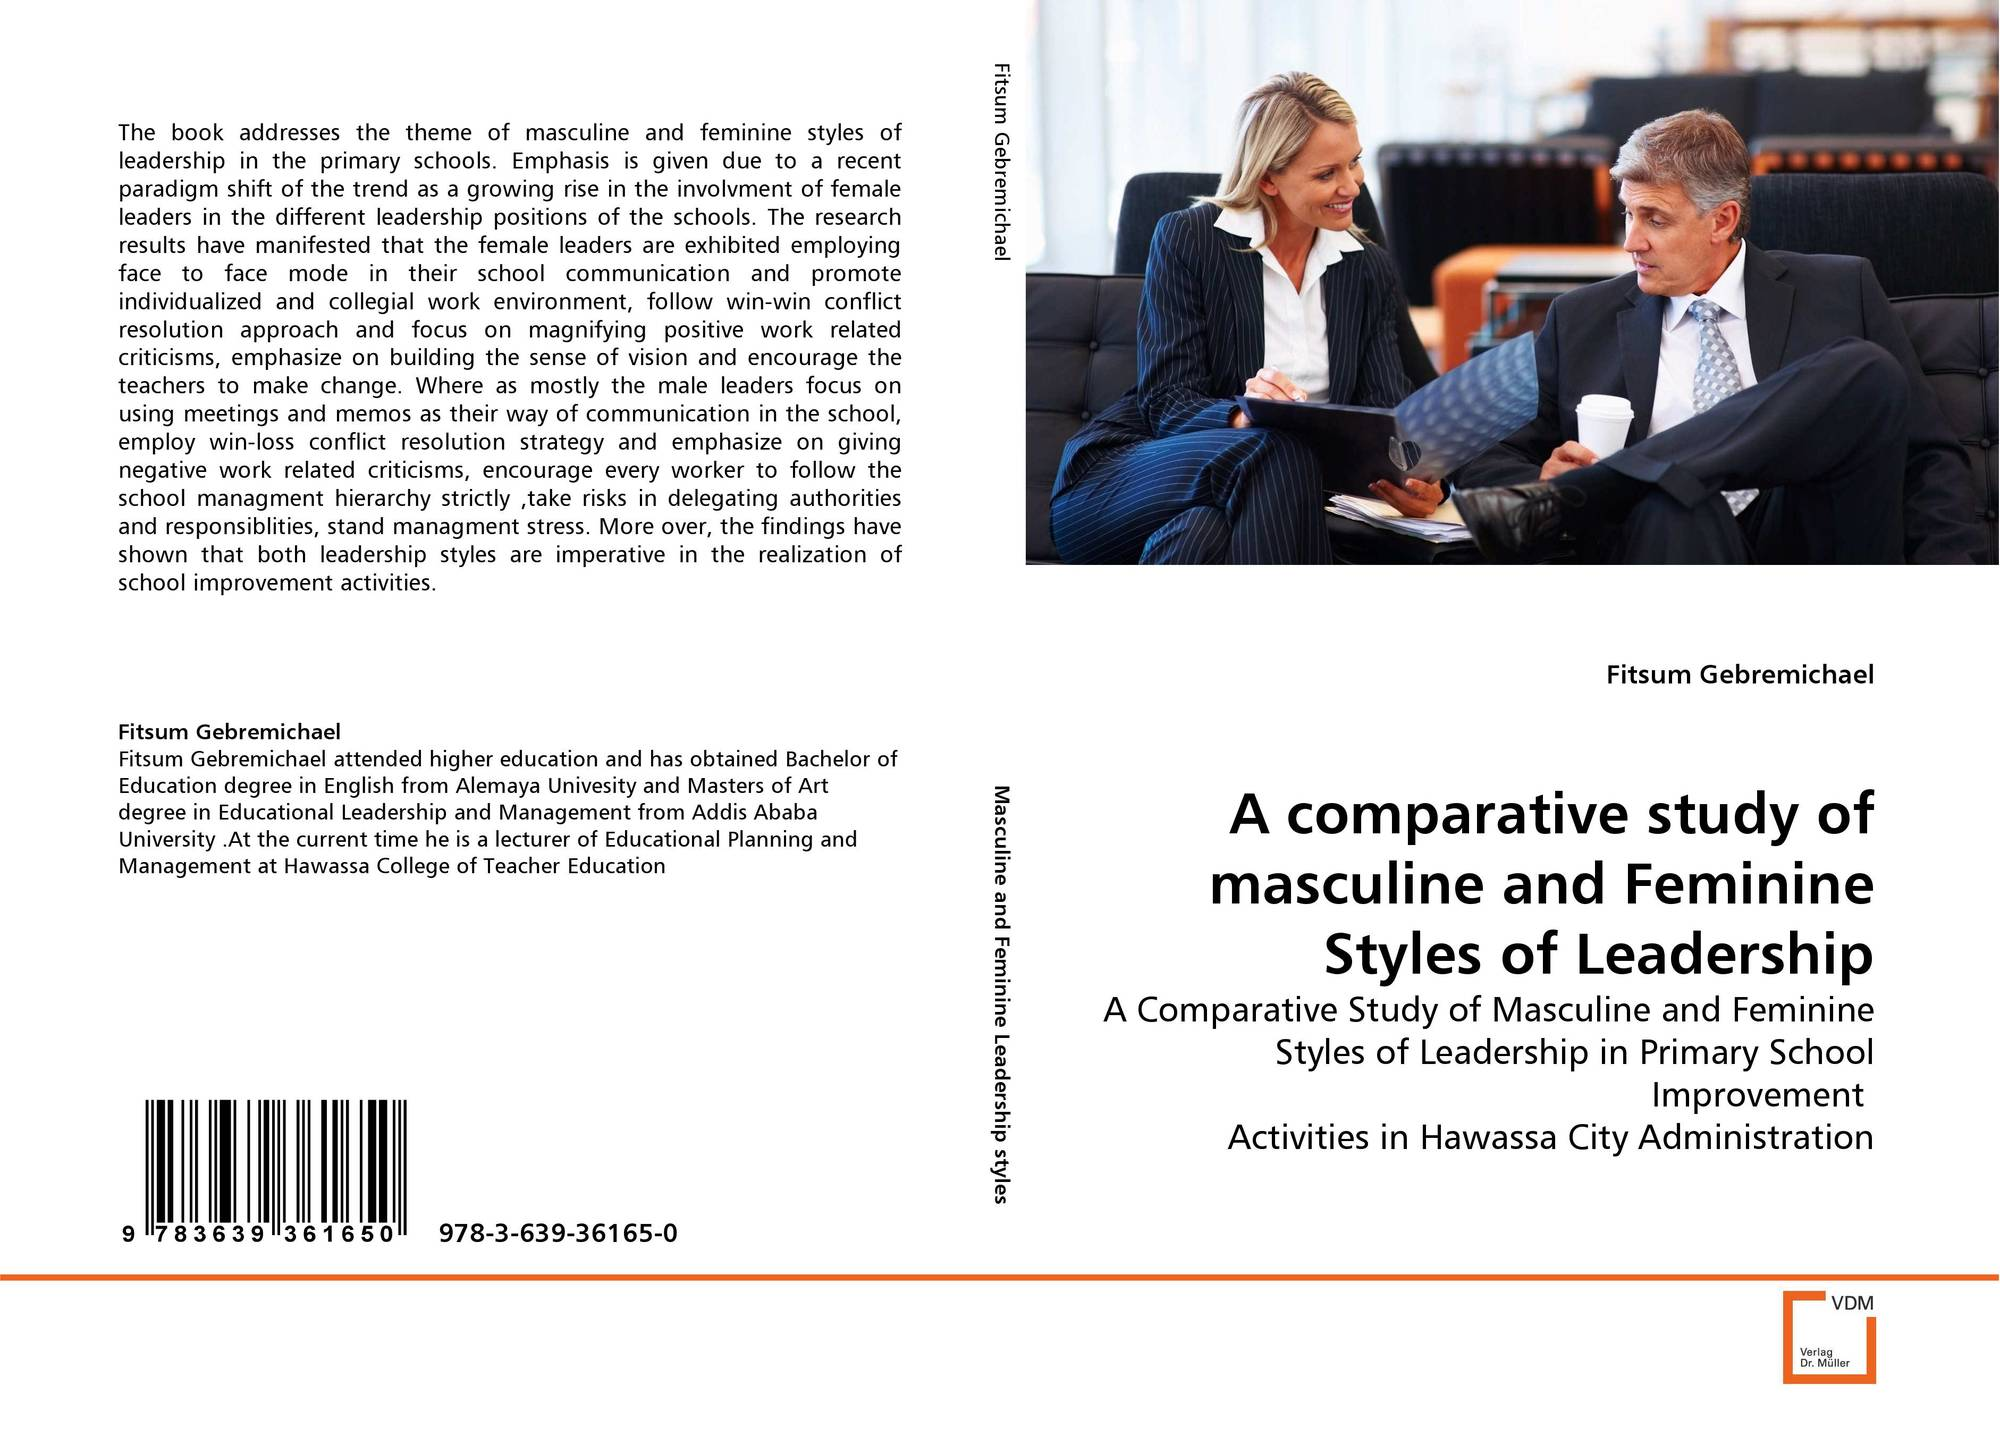 Traditional Masculinity and Femininity: Validation of a New Scale Assessing Gender Roles